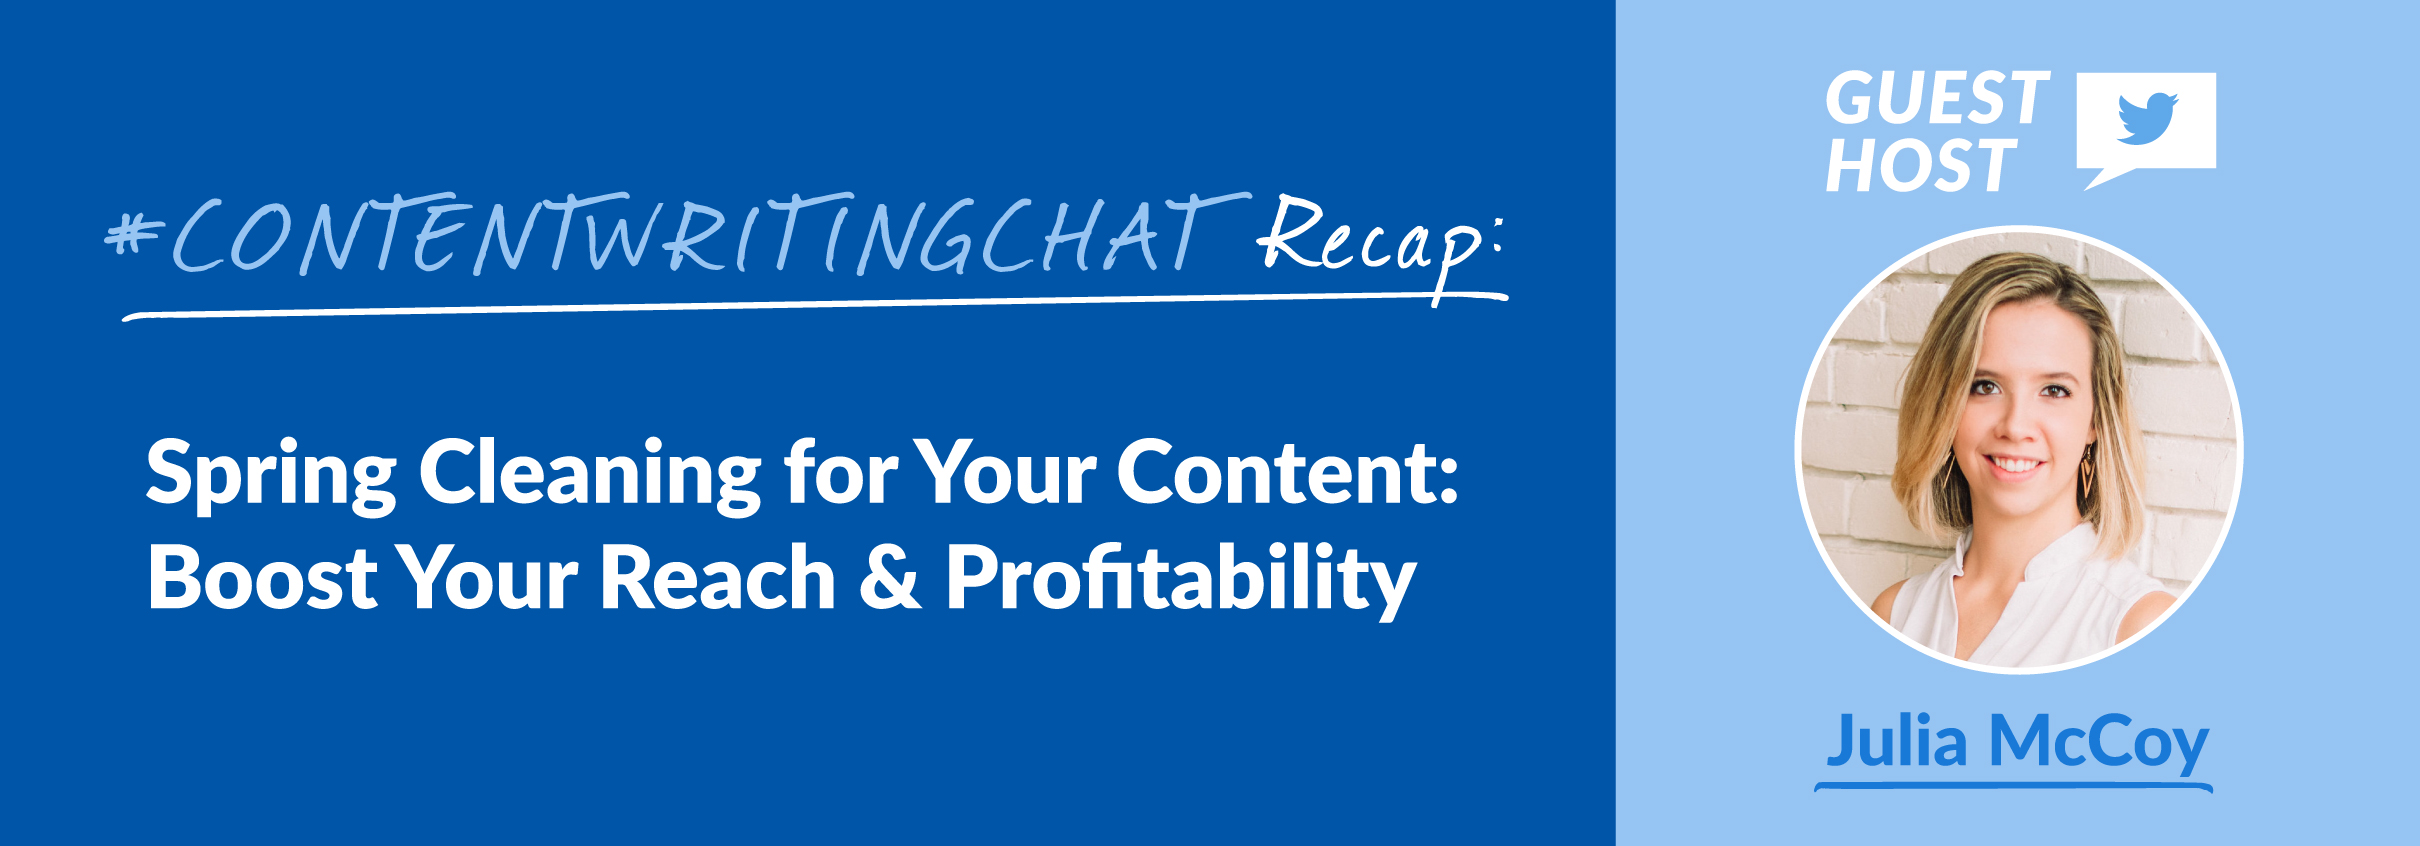 #ContentWritingChat Recap: Spring Cleaning for Your Content: Boost Your Reach & Profitability with Julia McCoy